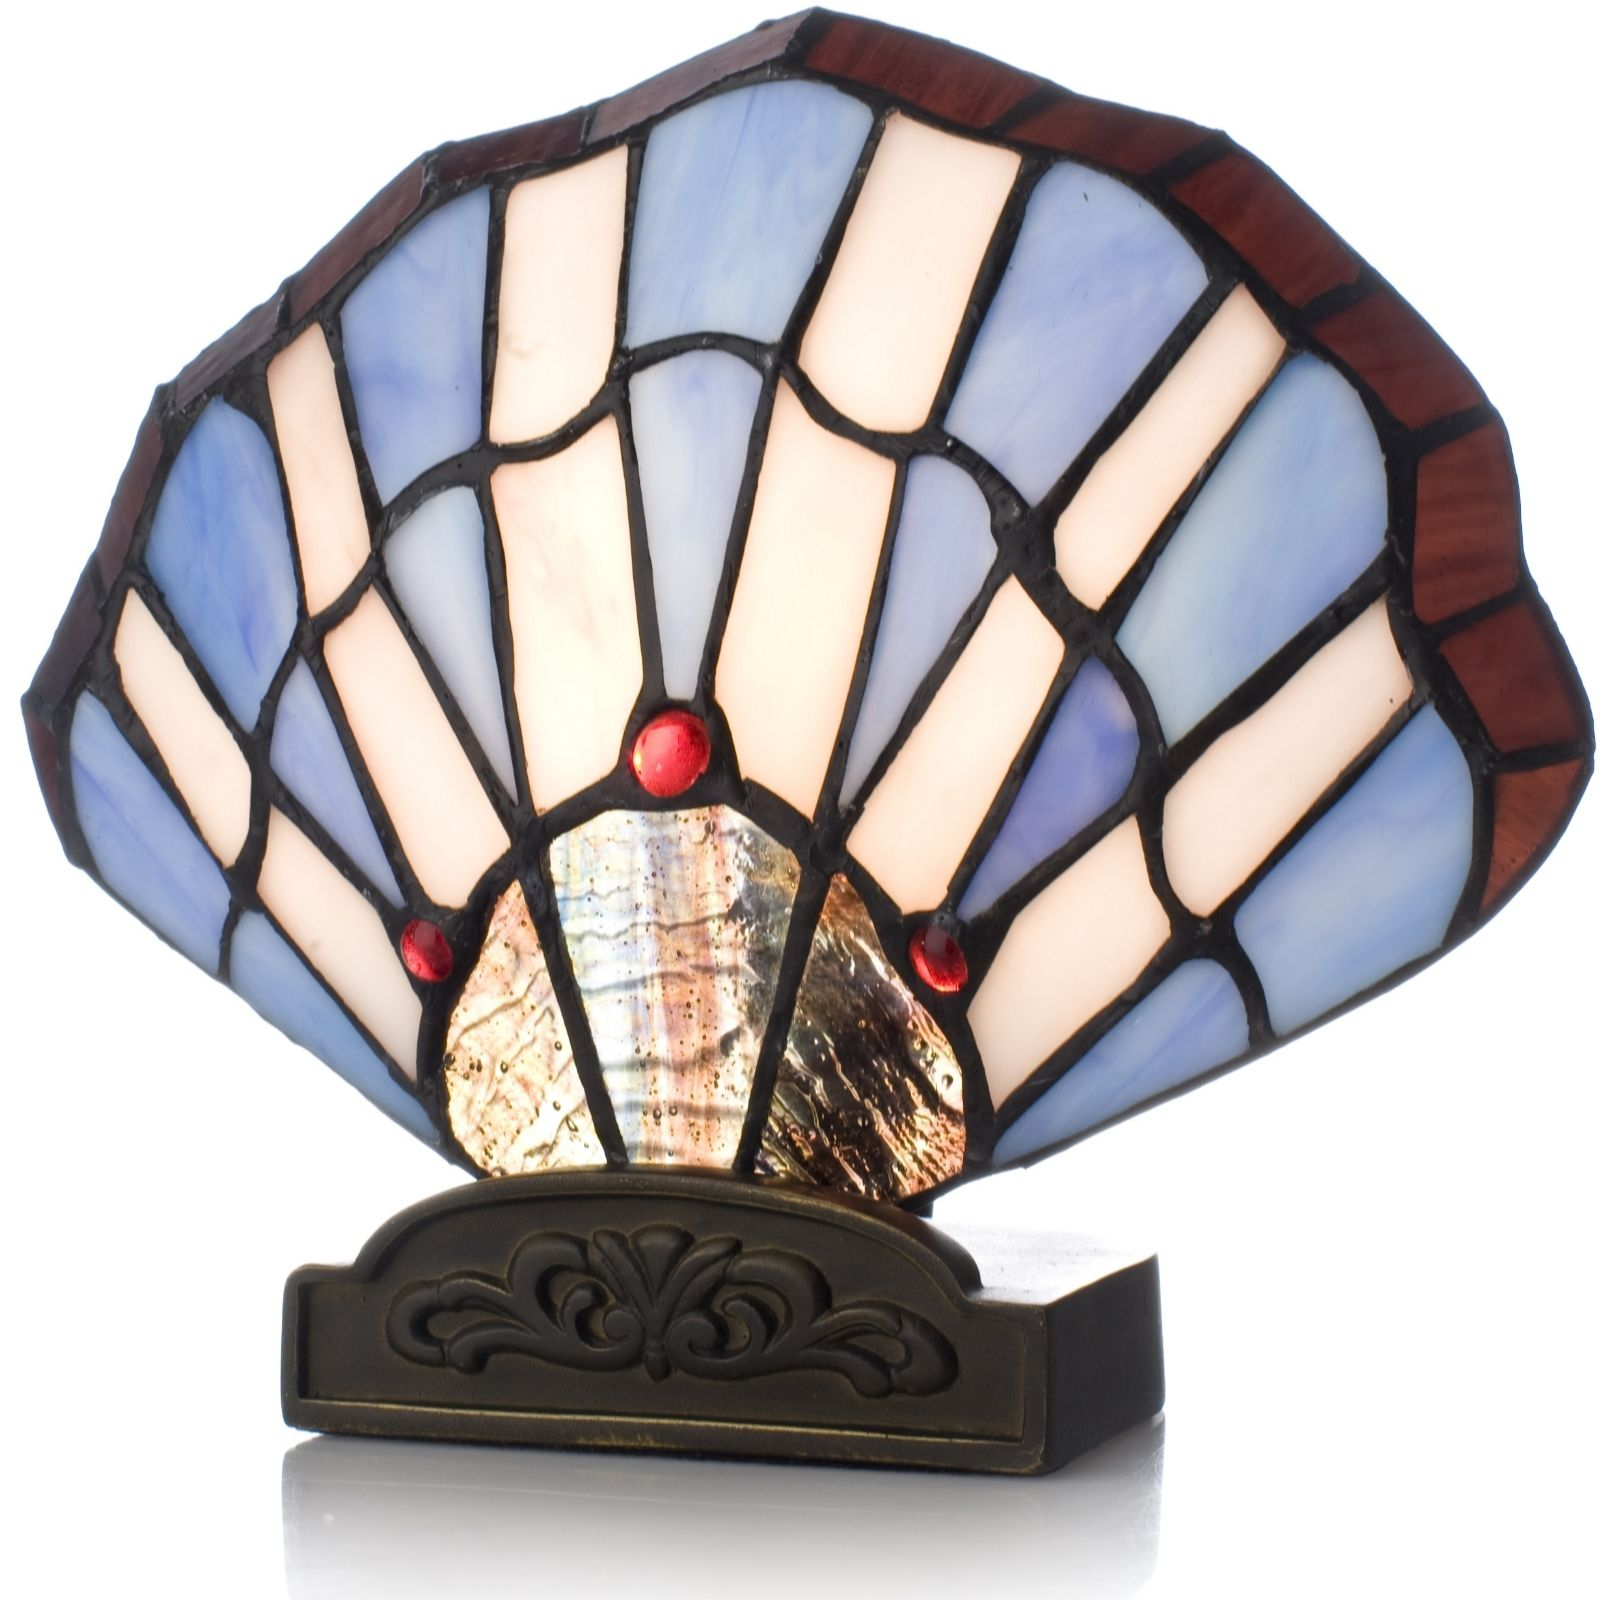 Tiffany Style Handcrafted Clam Shell Novelty Lamp   QVC UK